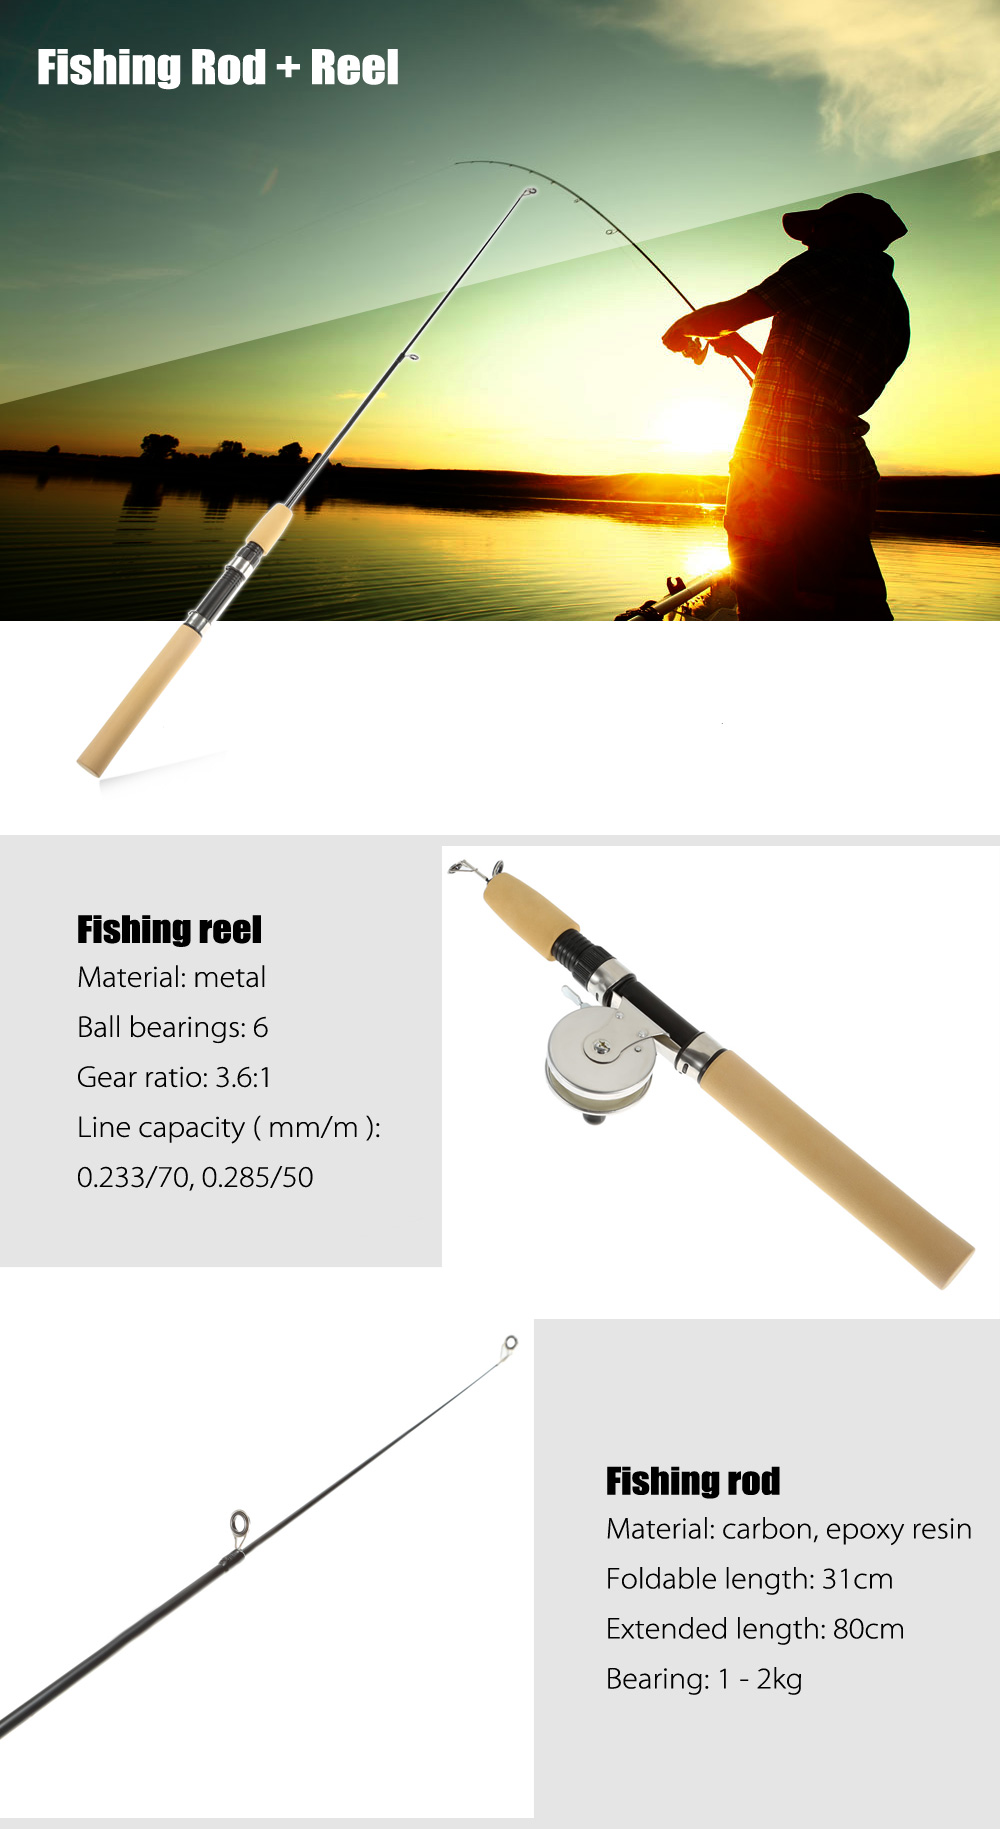 80cm Length Portable Telescopic Carbon / Epoxy Resin Fishing Rod Pole + Metal Reel